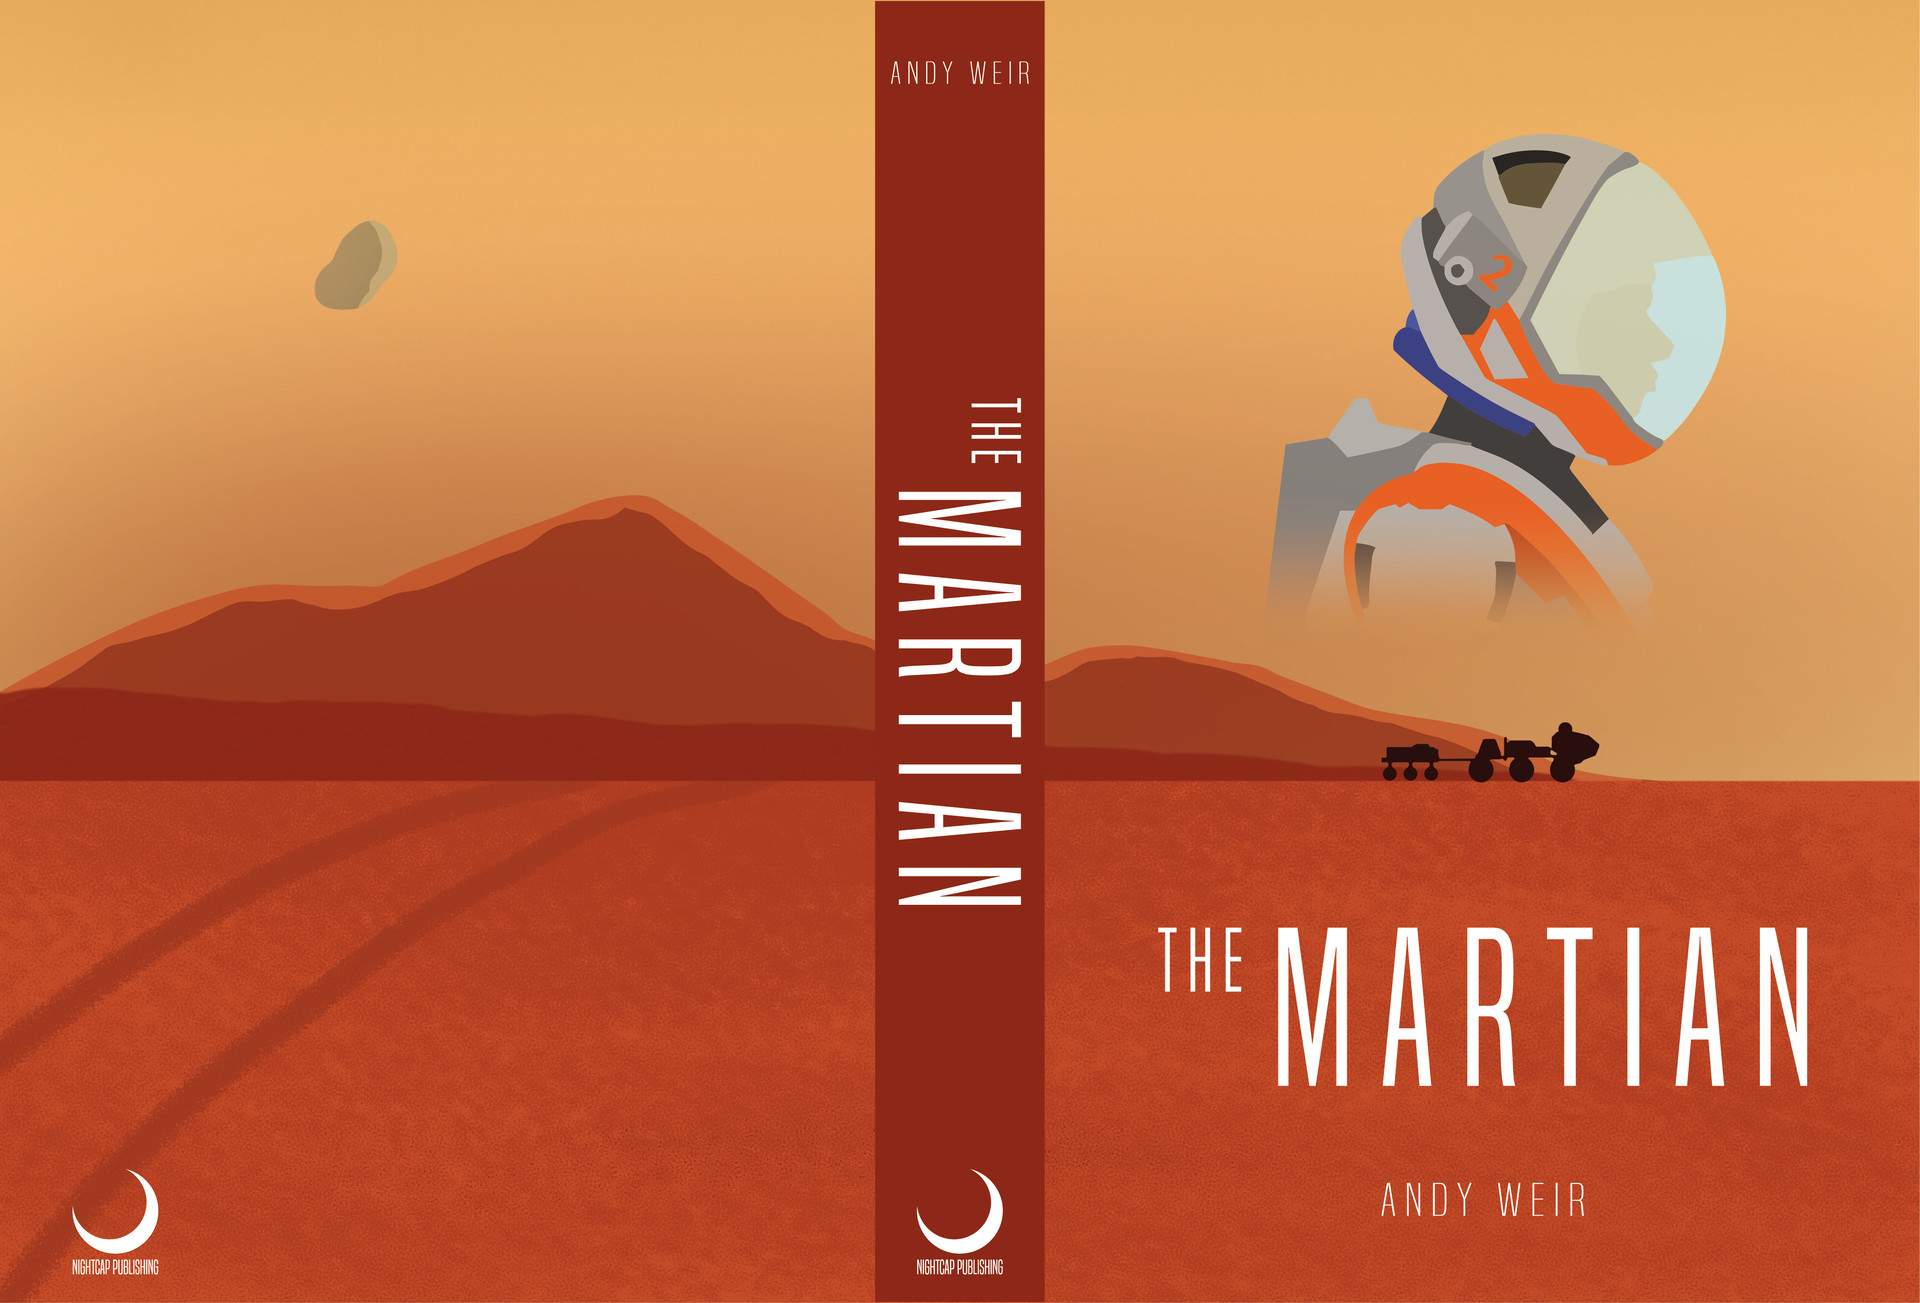 Mathew maddison the martian book cover 01